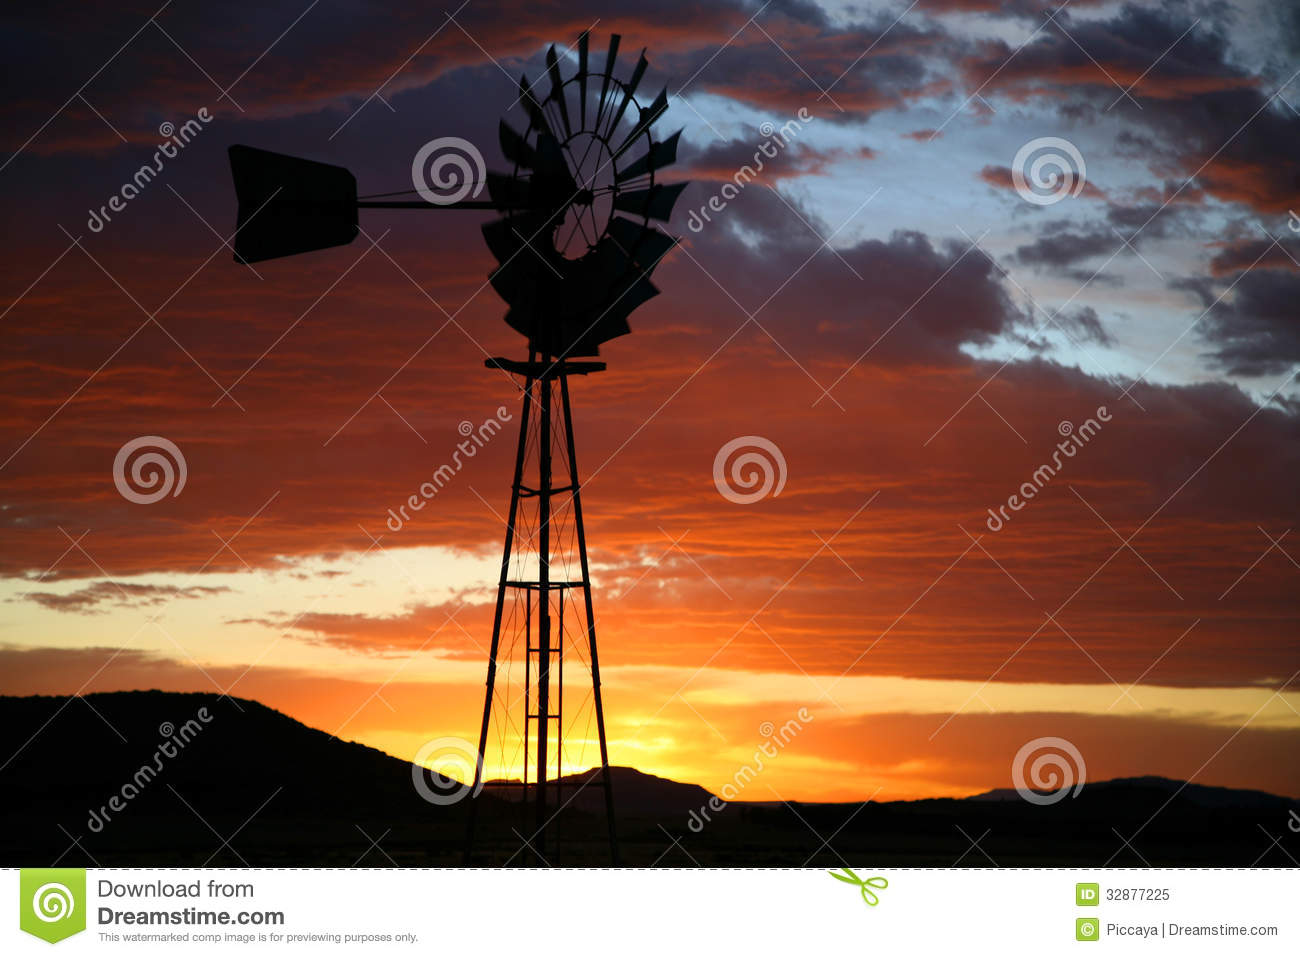 spinning top chair south africa covers by hana silhouette of farm windmill at sunset royalty free stock